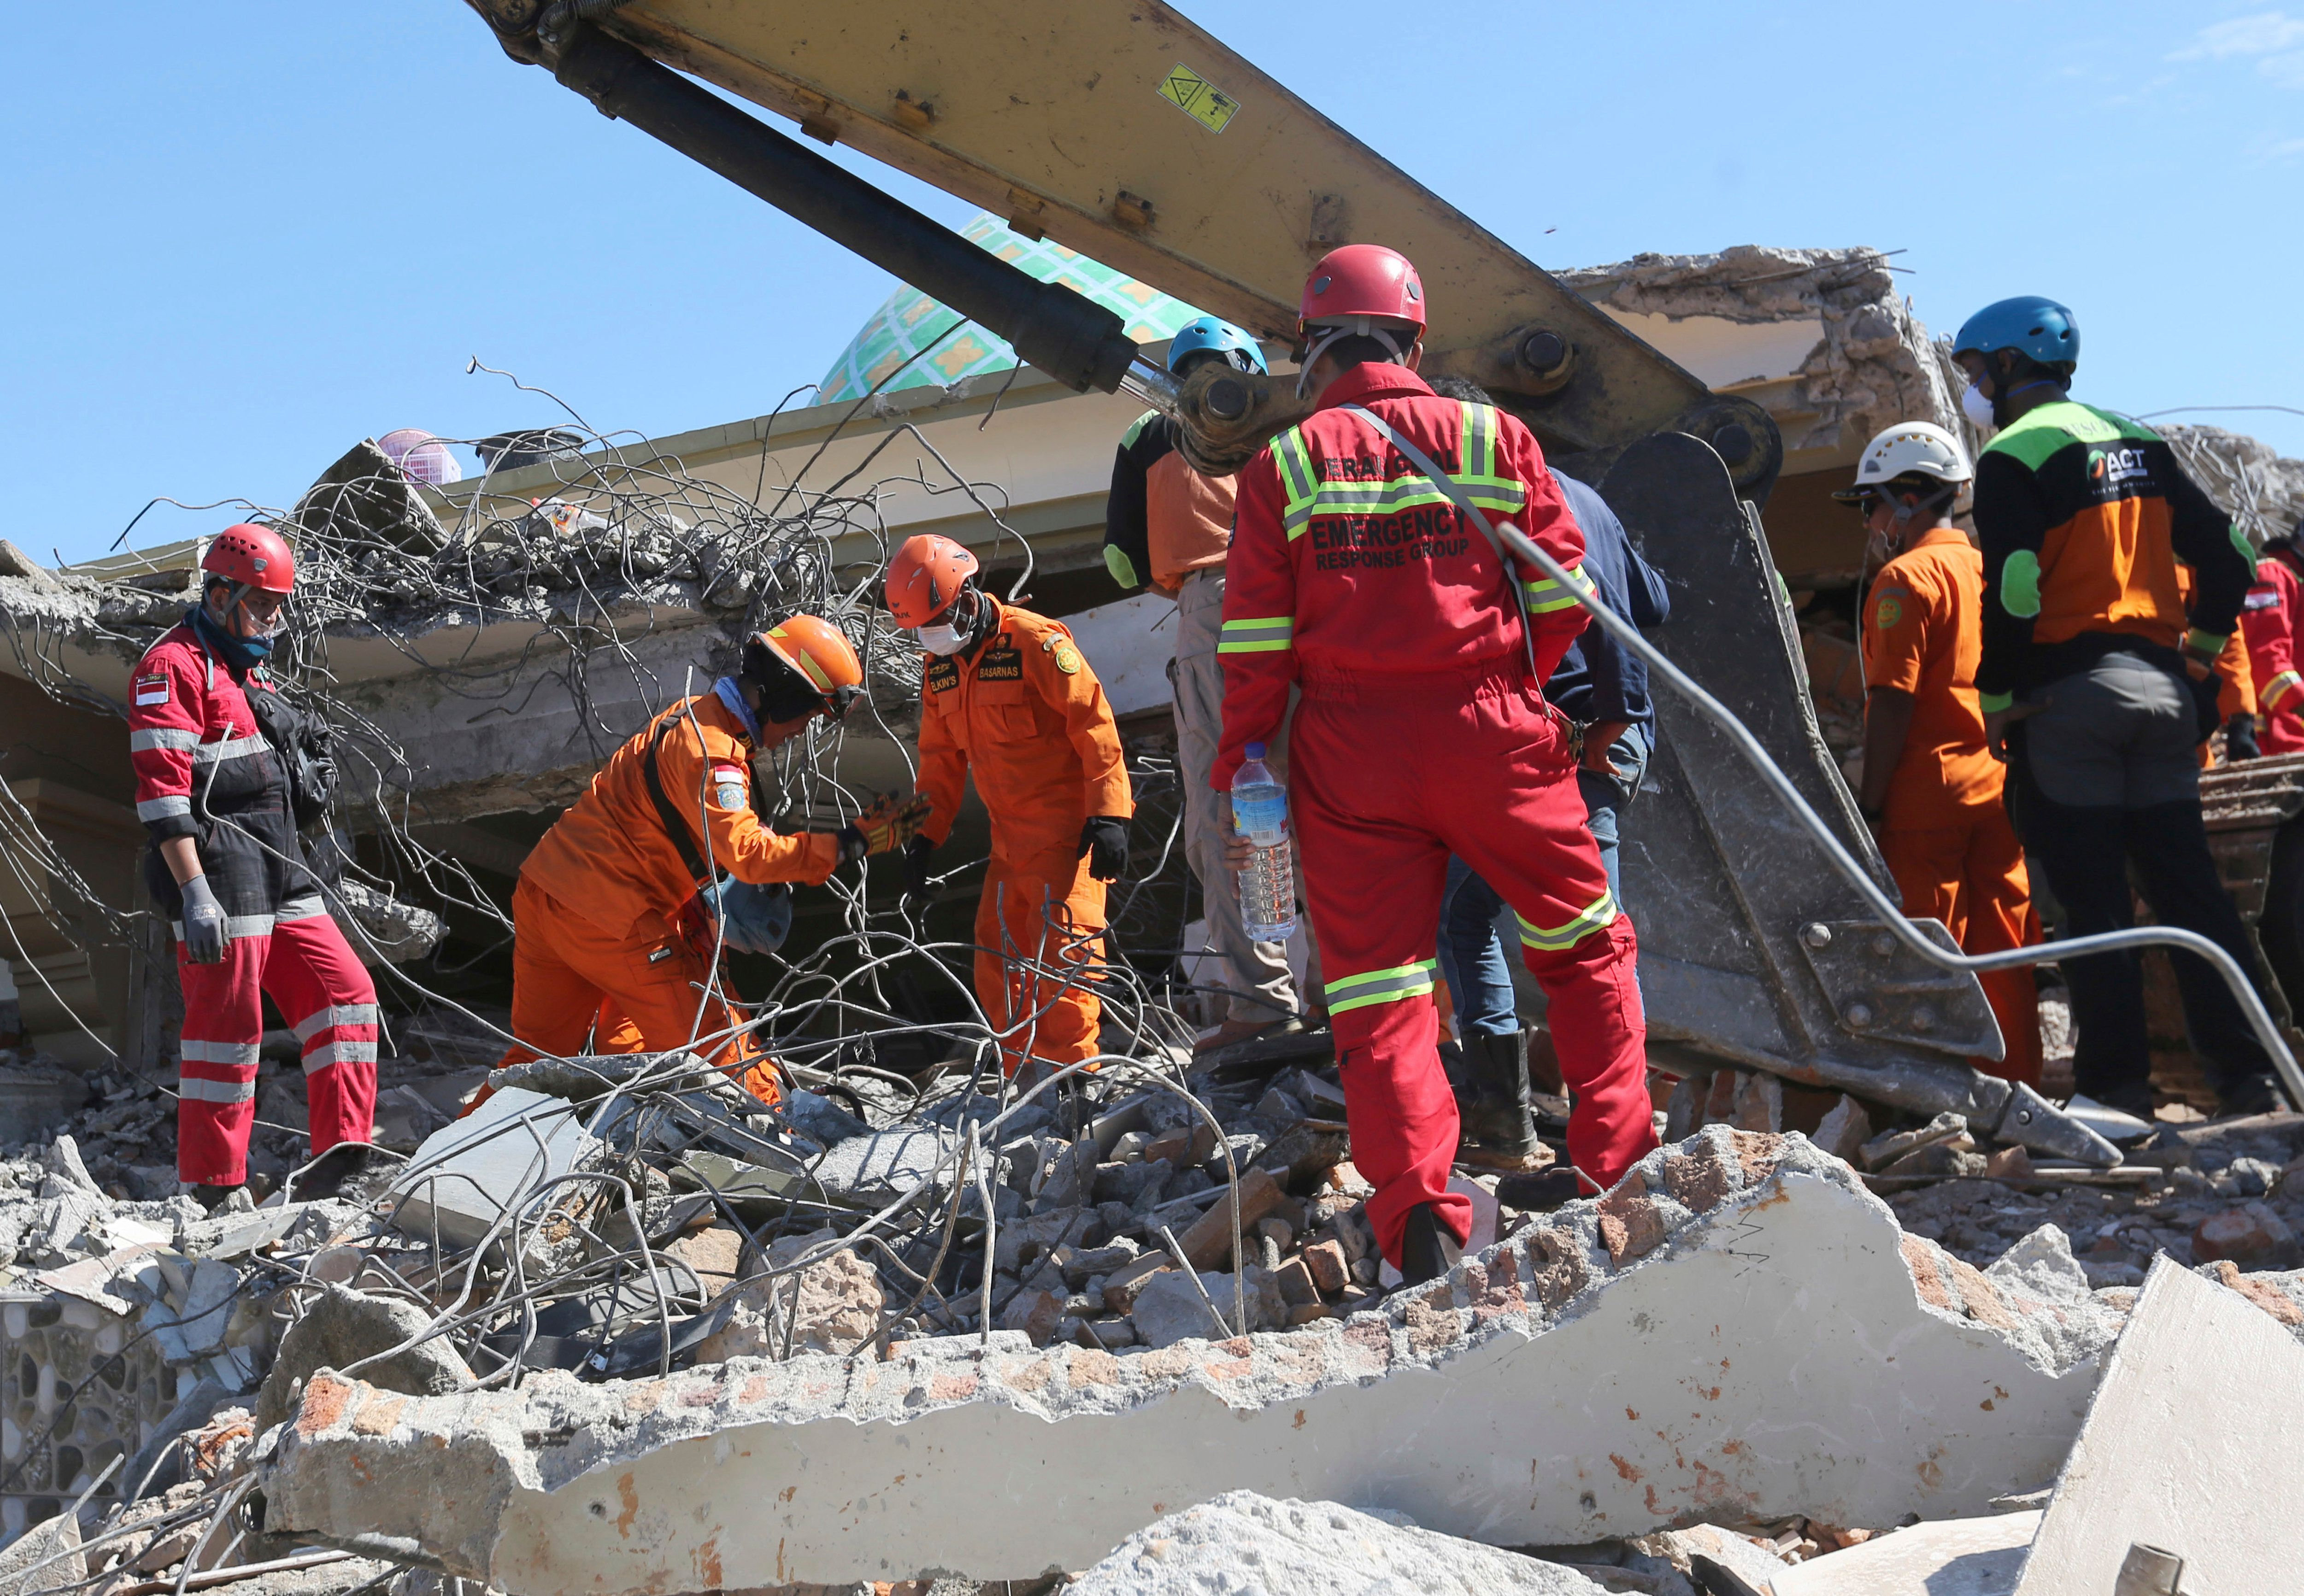 Rescuer teams continue to search for victims in the collapsed Jamiul Jamaah Mosque in Bangsal, North Lombok, Indonesia, Wednesday, Aug. 8, 2018. The north of Lombok was devastated by the powerful earthquake that struck Sunday night, damaging thousands of buildings and killing a large number of people. Rescuers were still struggling to reach all of the affected areas and authorities expect the death toll to rise. (AP Photo/Tatan Syuflana)ll to rise. (AP Photo/Tatan Syuflana)